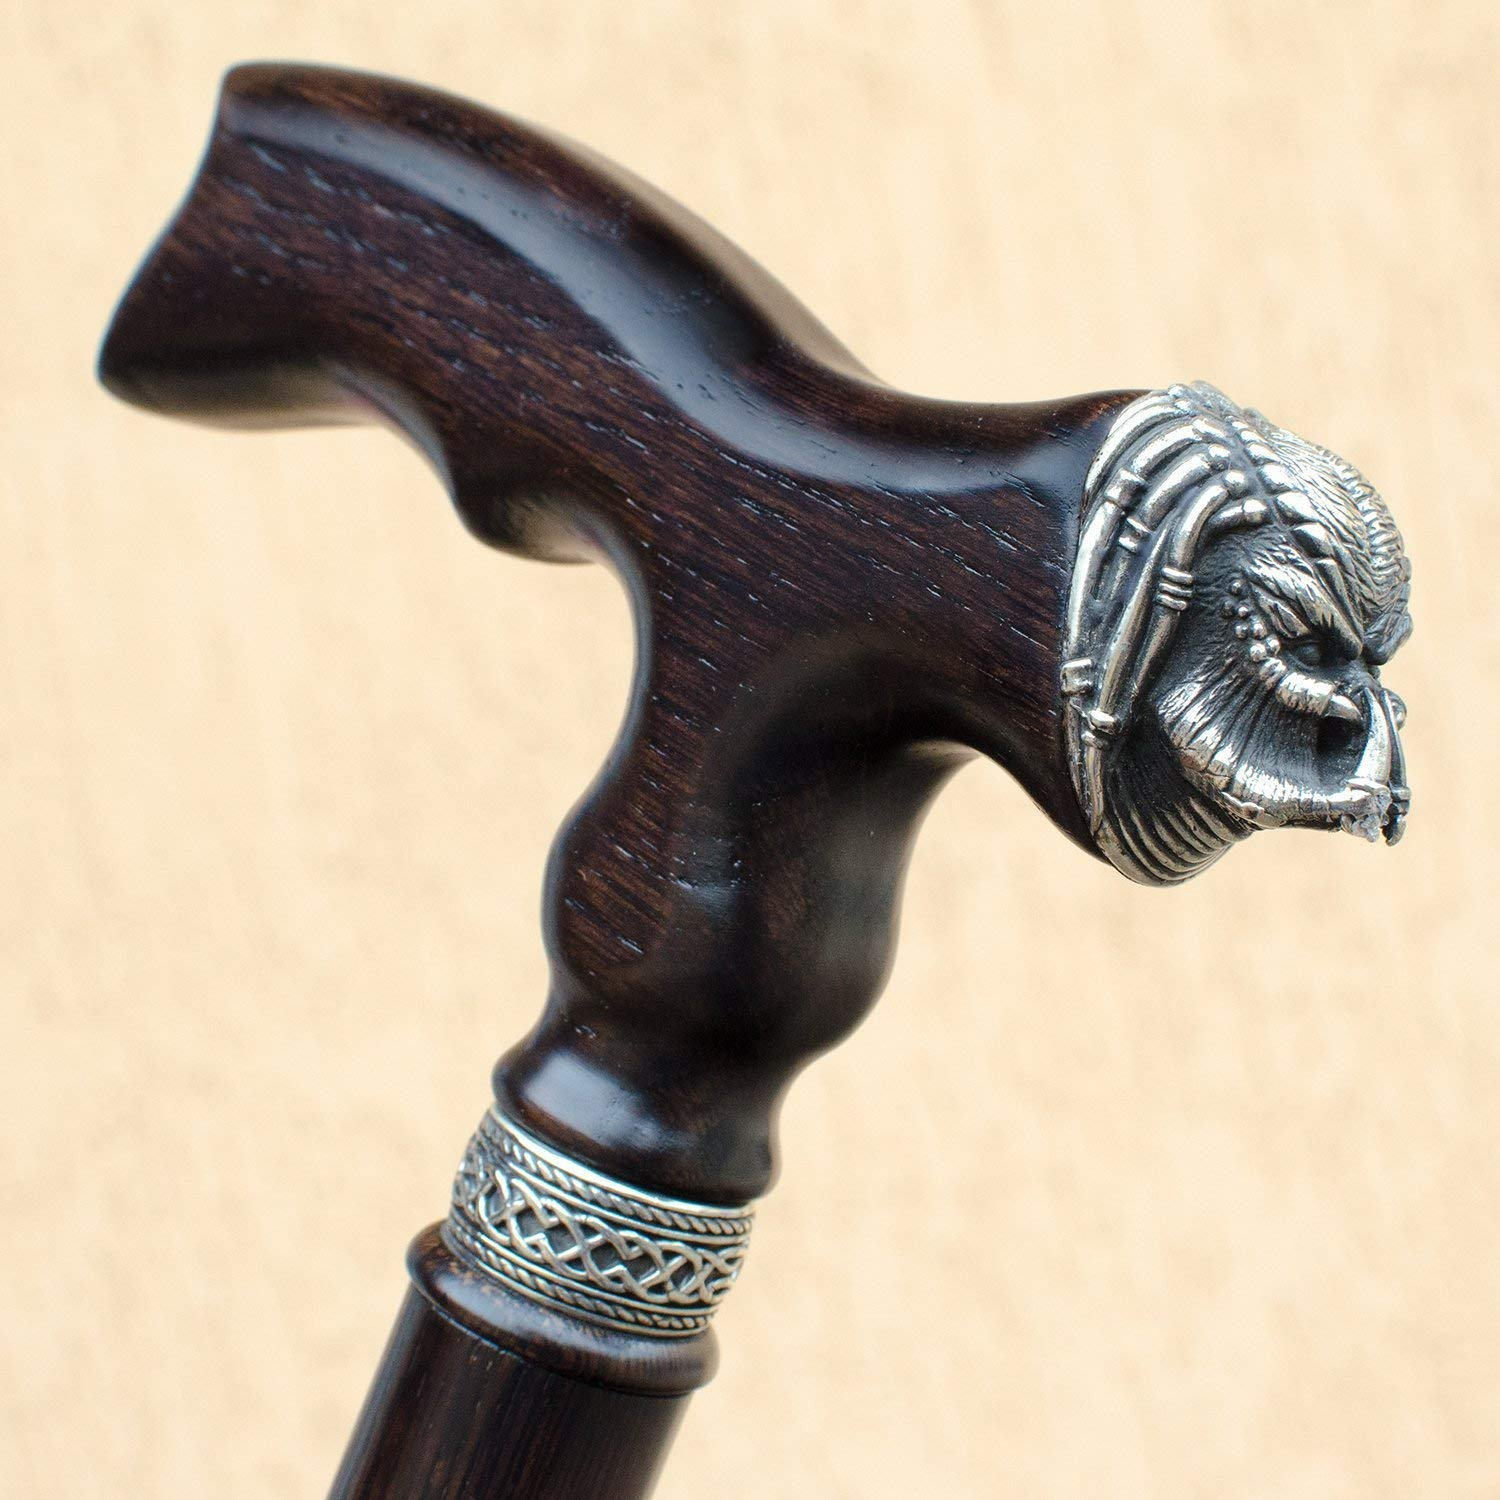 One of a Kind! Wooden Walking Stick - Handmade Cane with Unique PREDATOR Pommel - Custom Length 32-39 - Up to 400 Lbs - Ergonomic Handle - Available in 3 Colors - Natural Oak